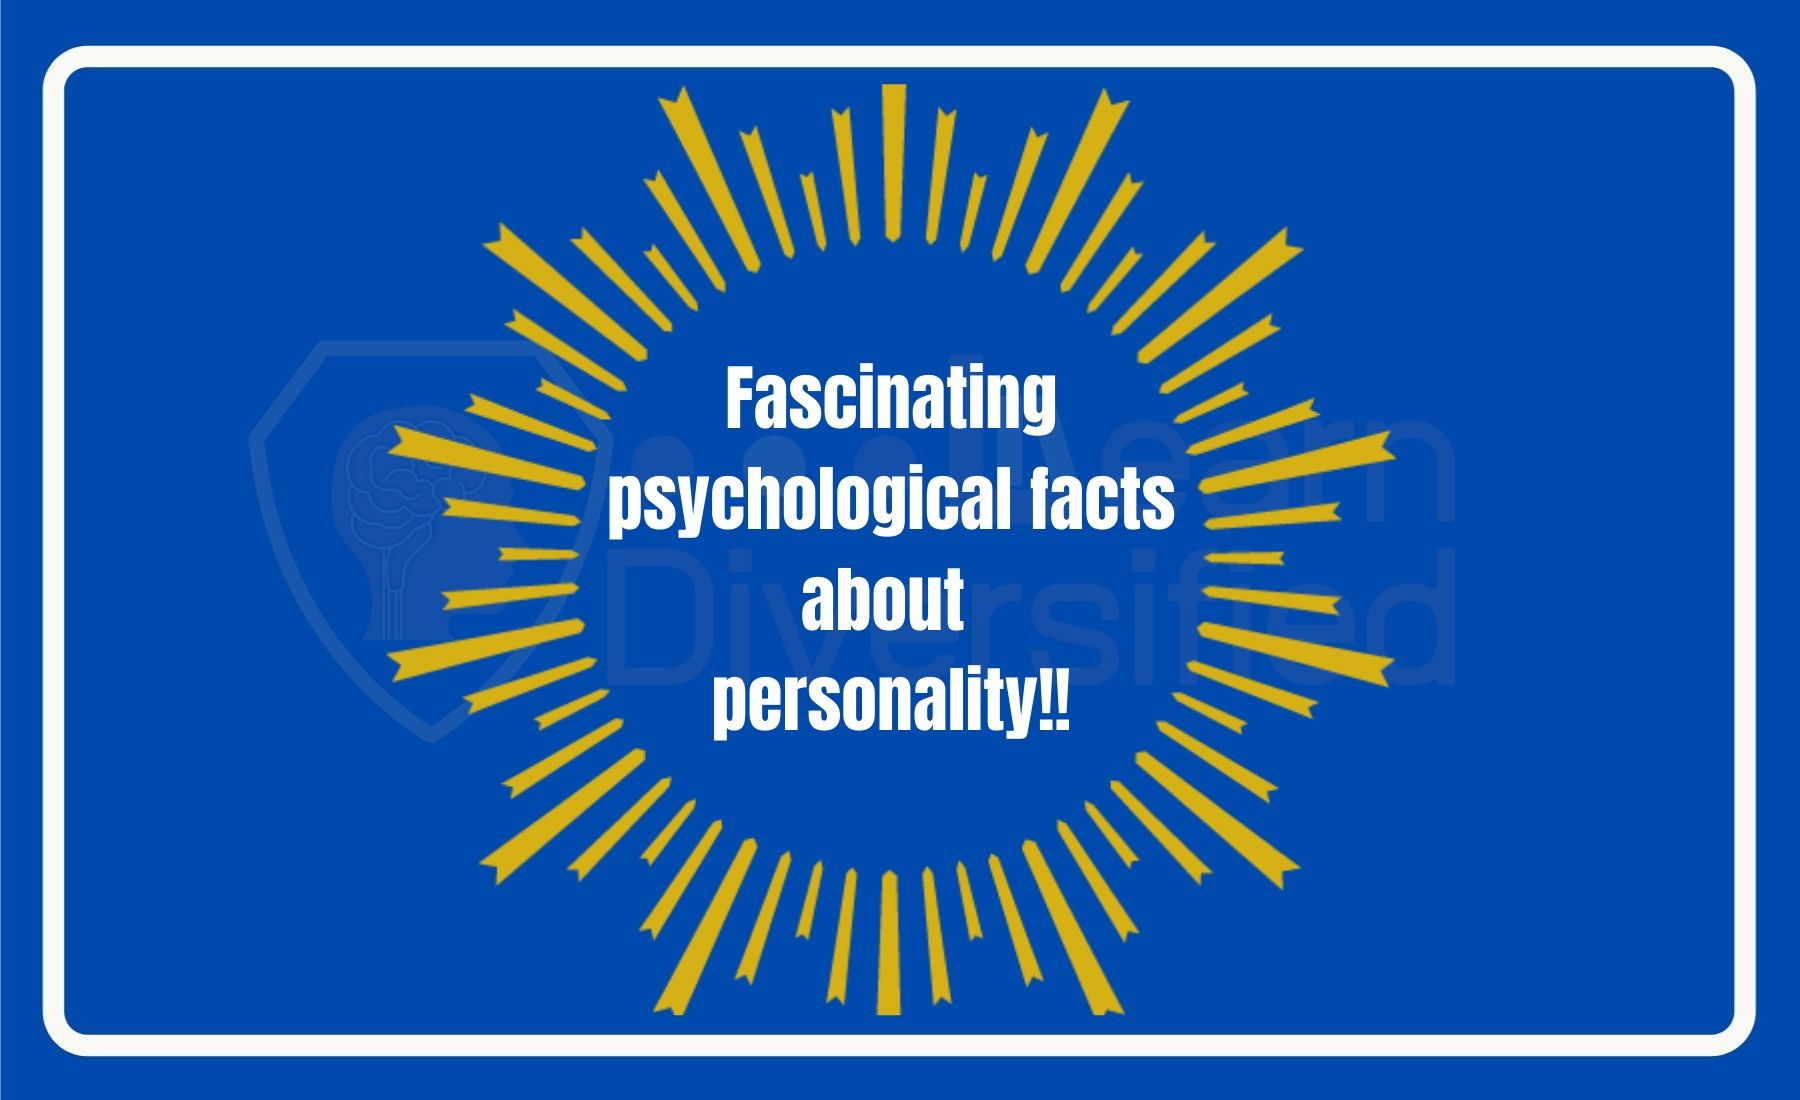 Fascinating facts about personality